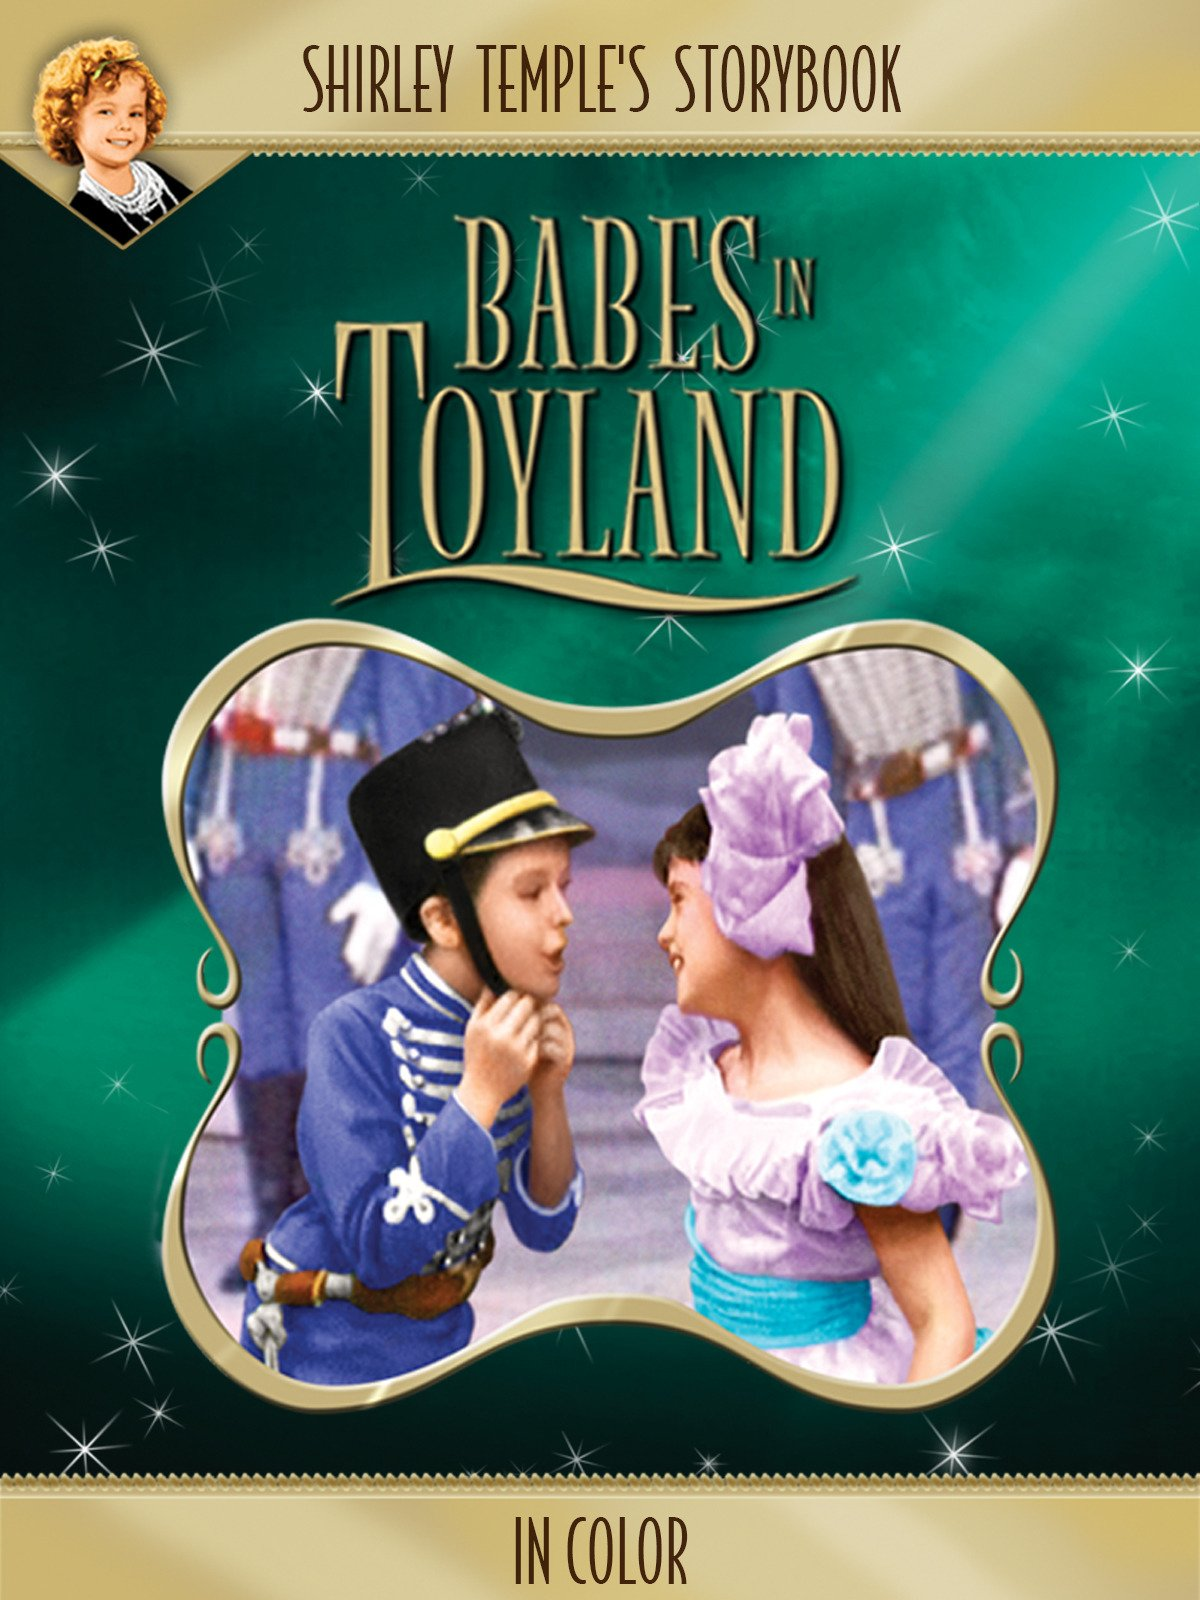 Shriely Temple's Storybook: Babes in Toyland (in Color)